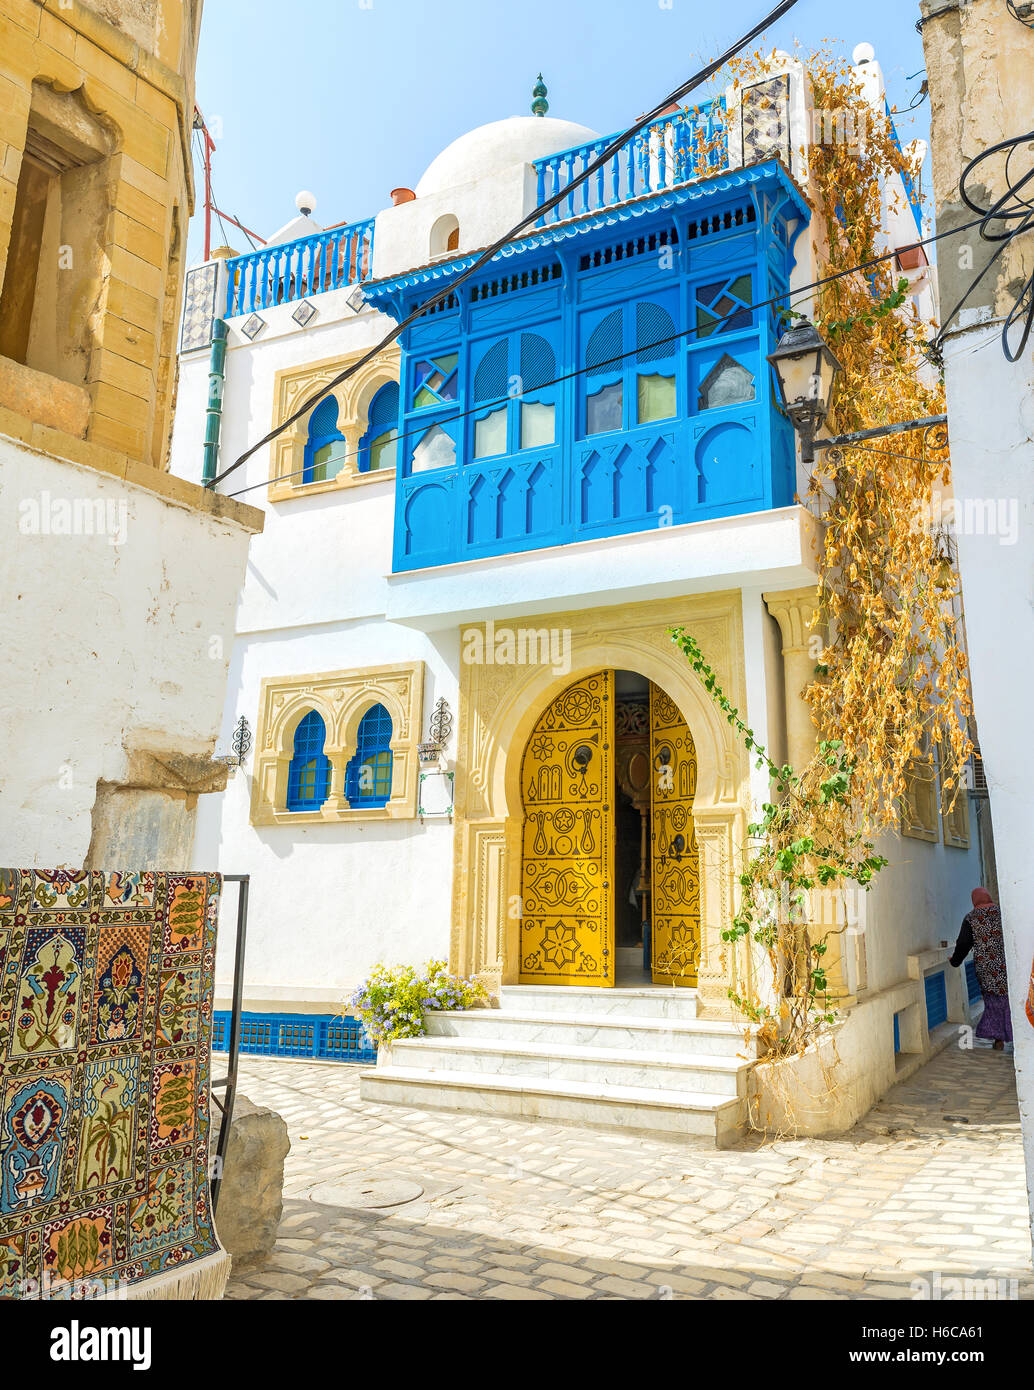 The white house decorated with the bright blue wooden balcony and yellow door with numerous rivets, Sousse, Tunisia. - Stock Image